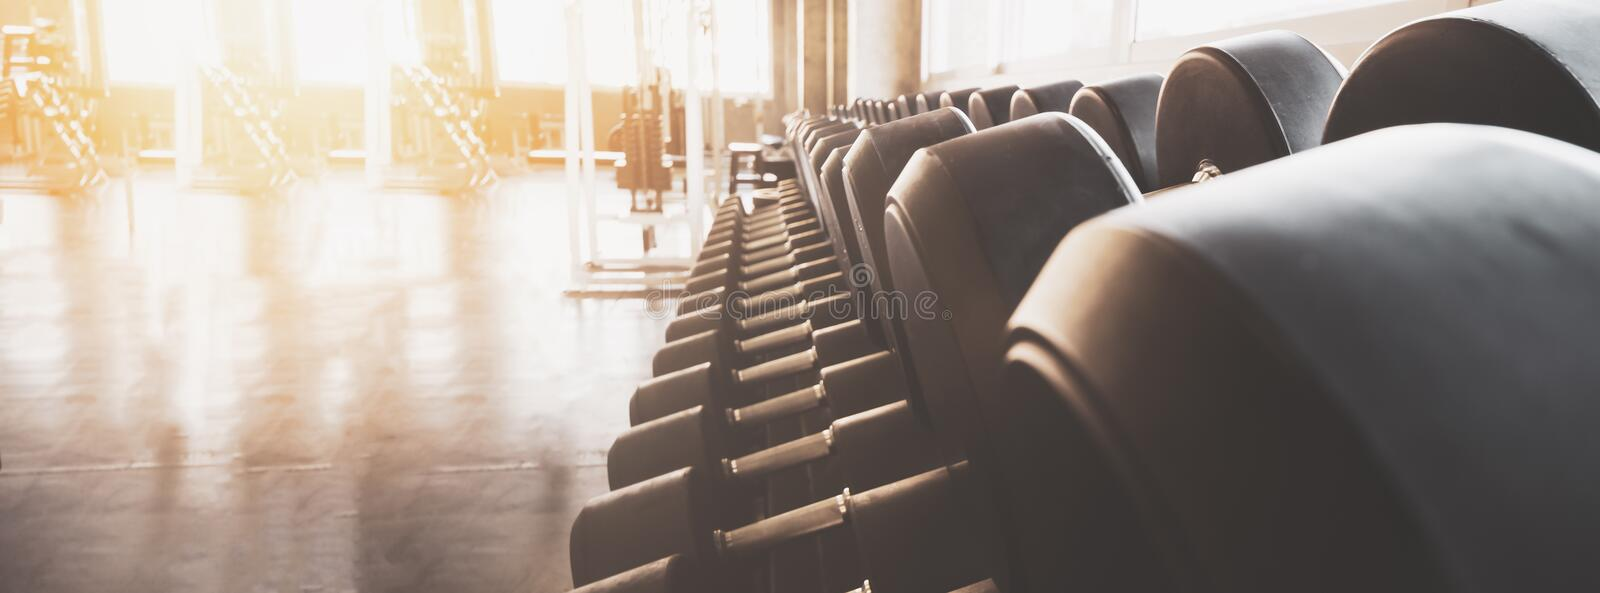 Gym equipment wide interior gym for fitness banner background close up dumbbells and blurred equipment royalty free stock photos